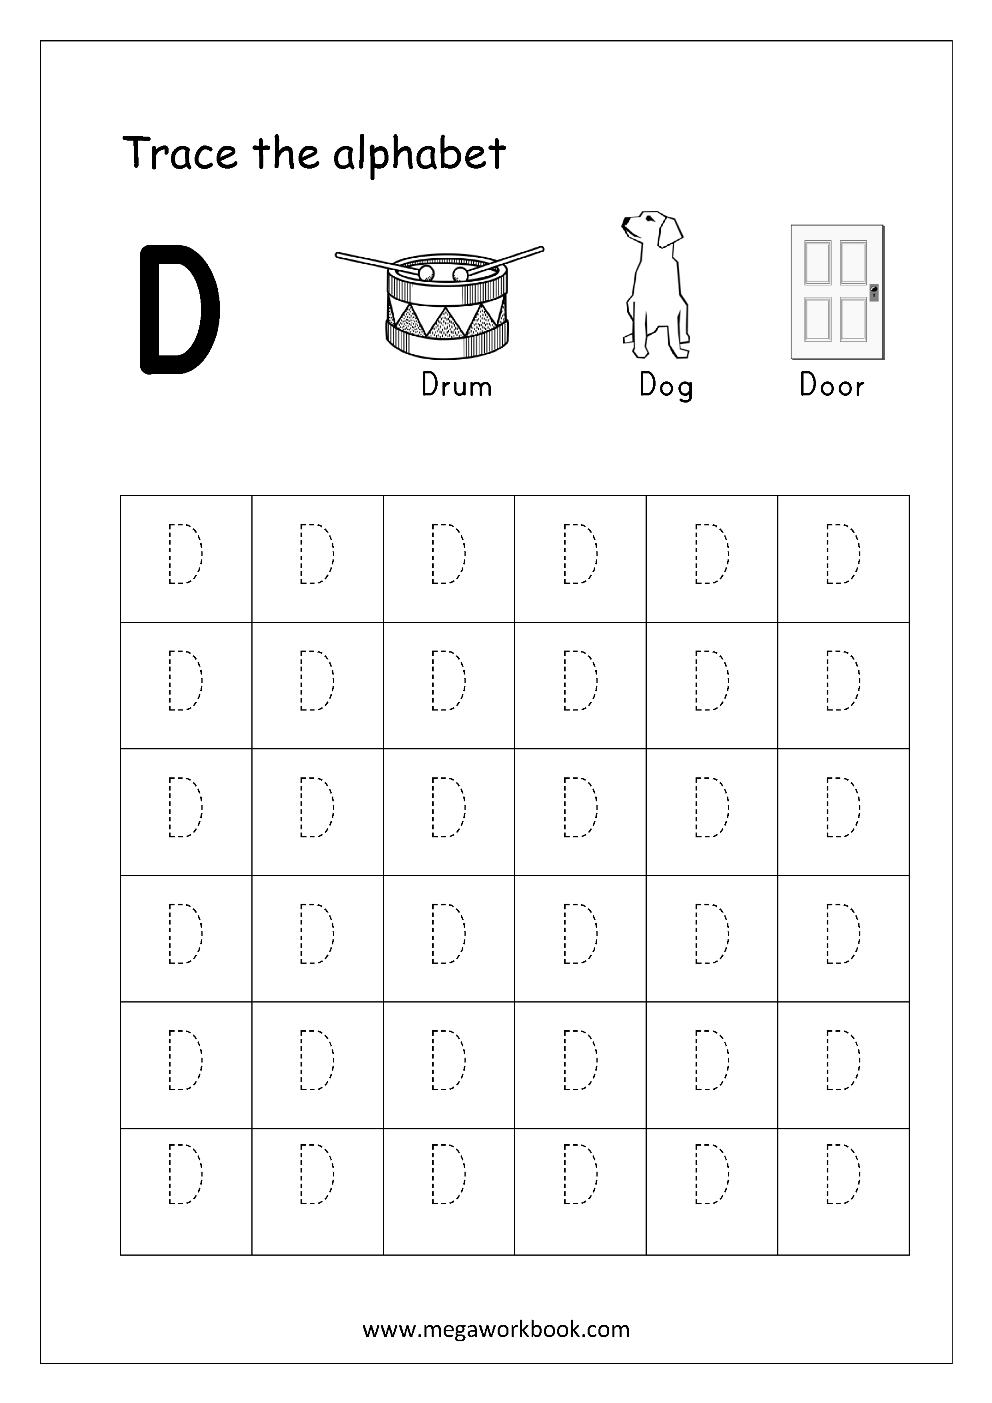 Worksheet ~ Worksheet Free Printable For Preschool Kids Clip intended for Alphabet D Tracing